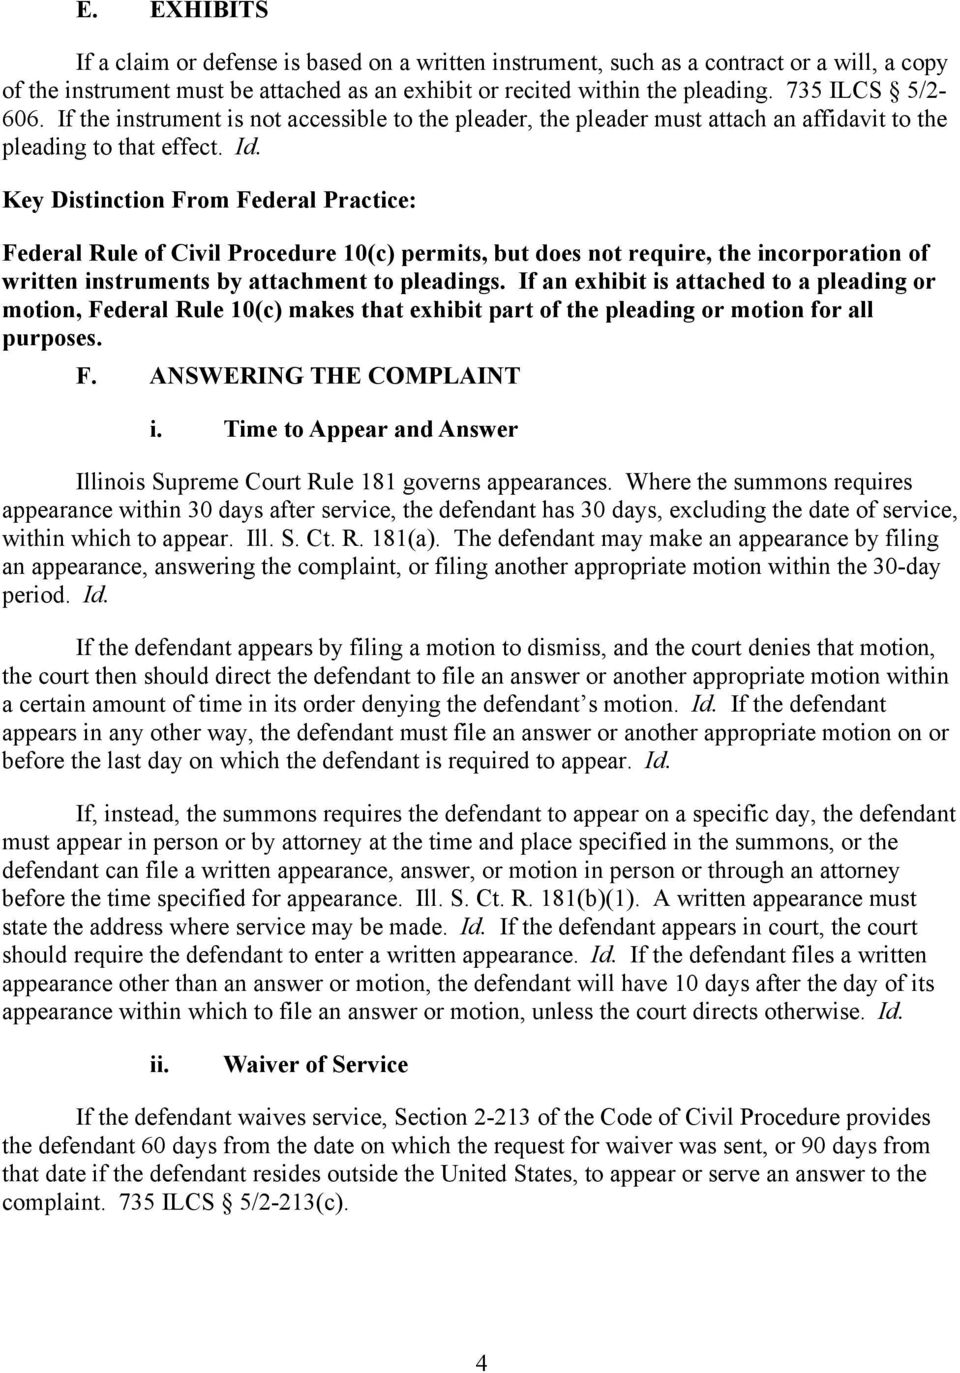 Key Distinction From Federal Practice: Federal Rule of Civil Procedure 10(c) permits, but does not require, the incorporation of written instruments by attachment to pleadings.